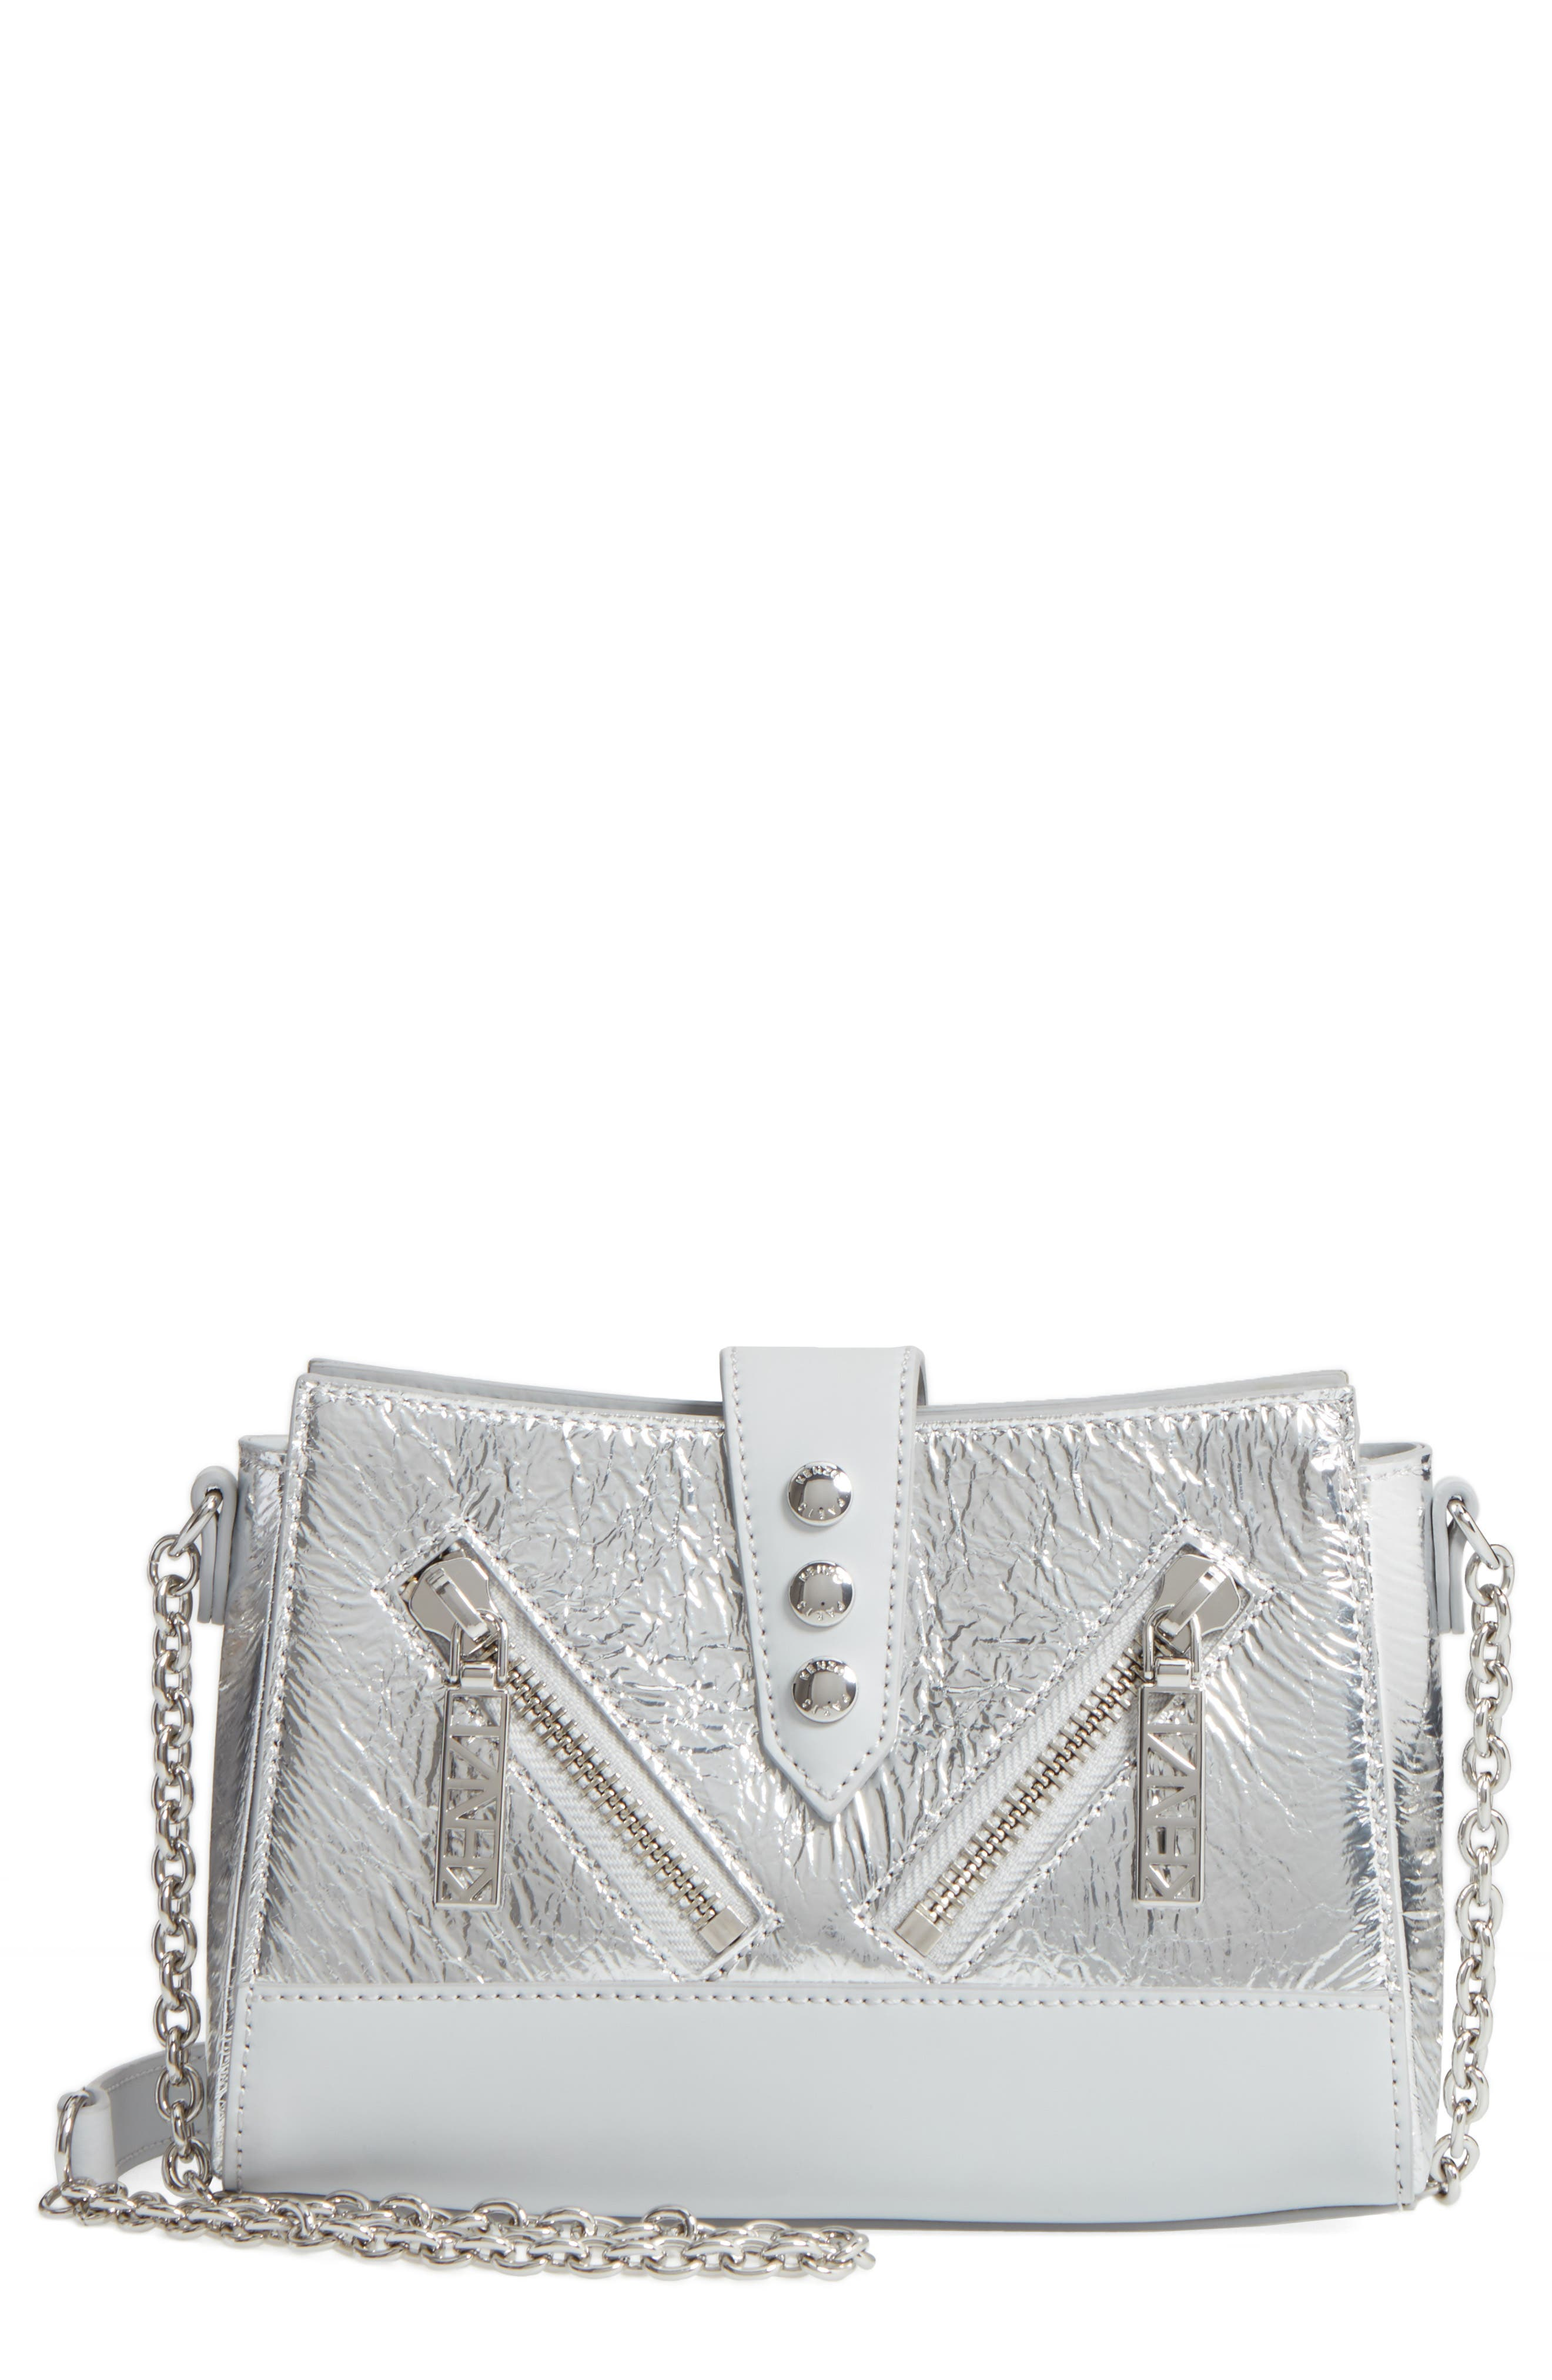 KENZO Mini Kalifornia Metallic Leather Crossbody Bag